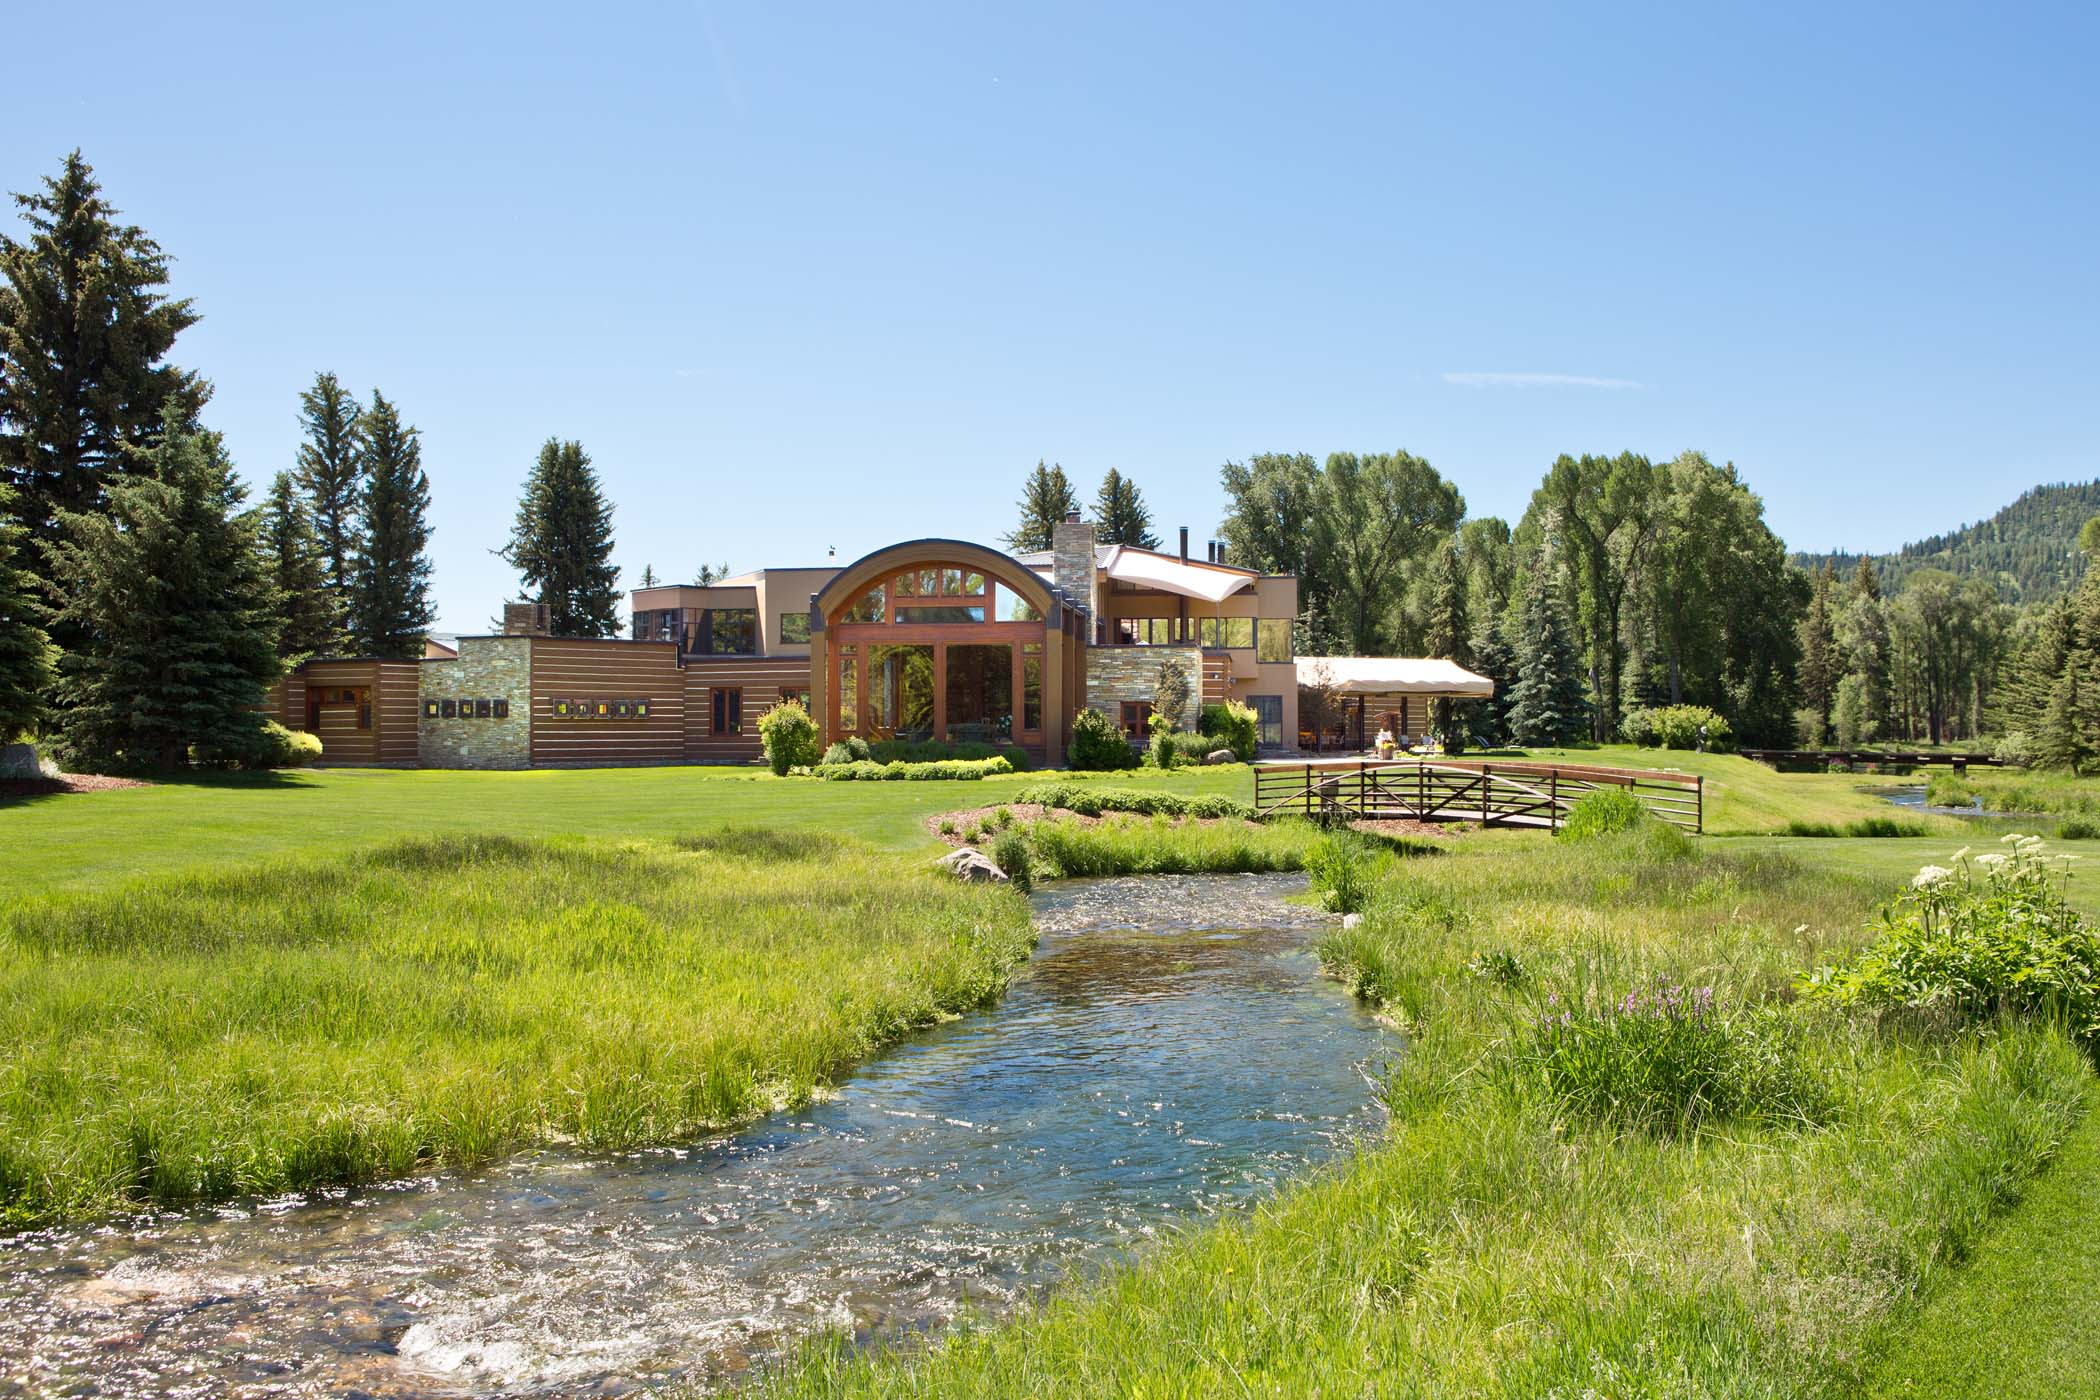 Single Family Home for Sale at Creekside Elegance Jackson, Wyoming, 83001 United States